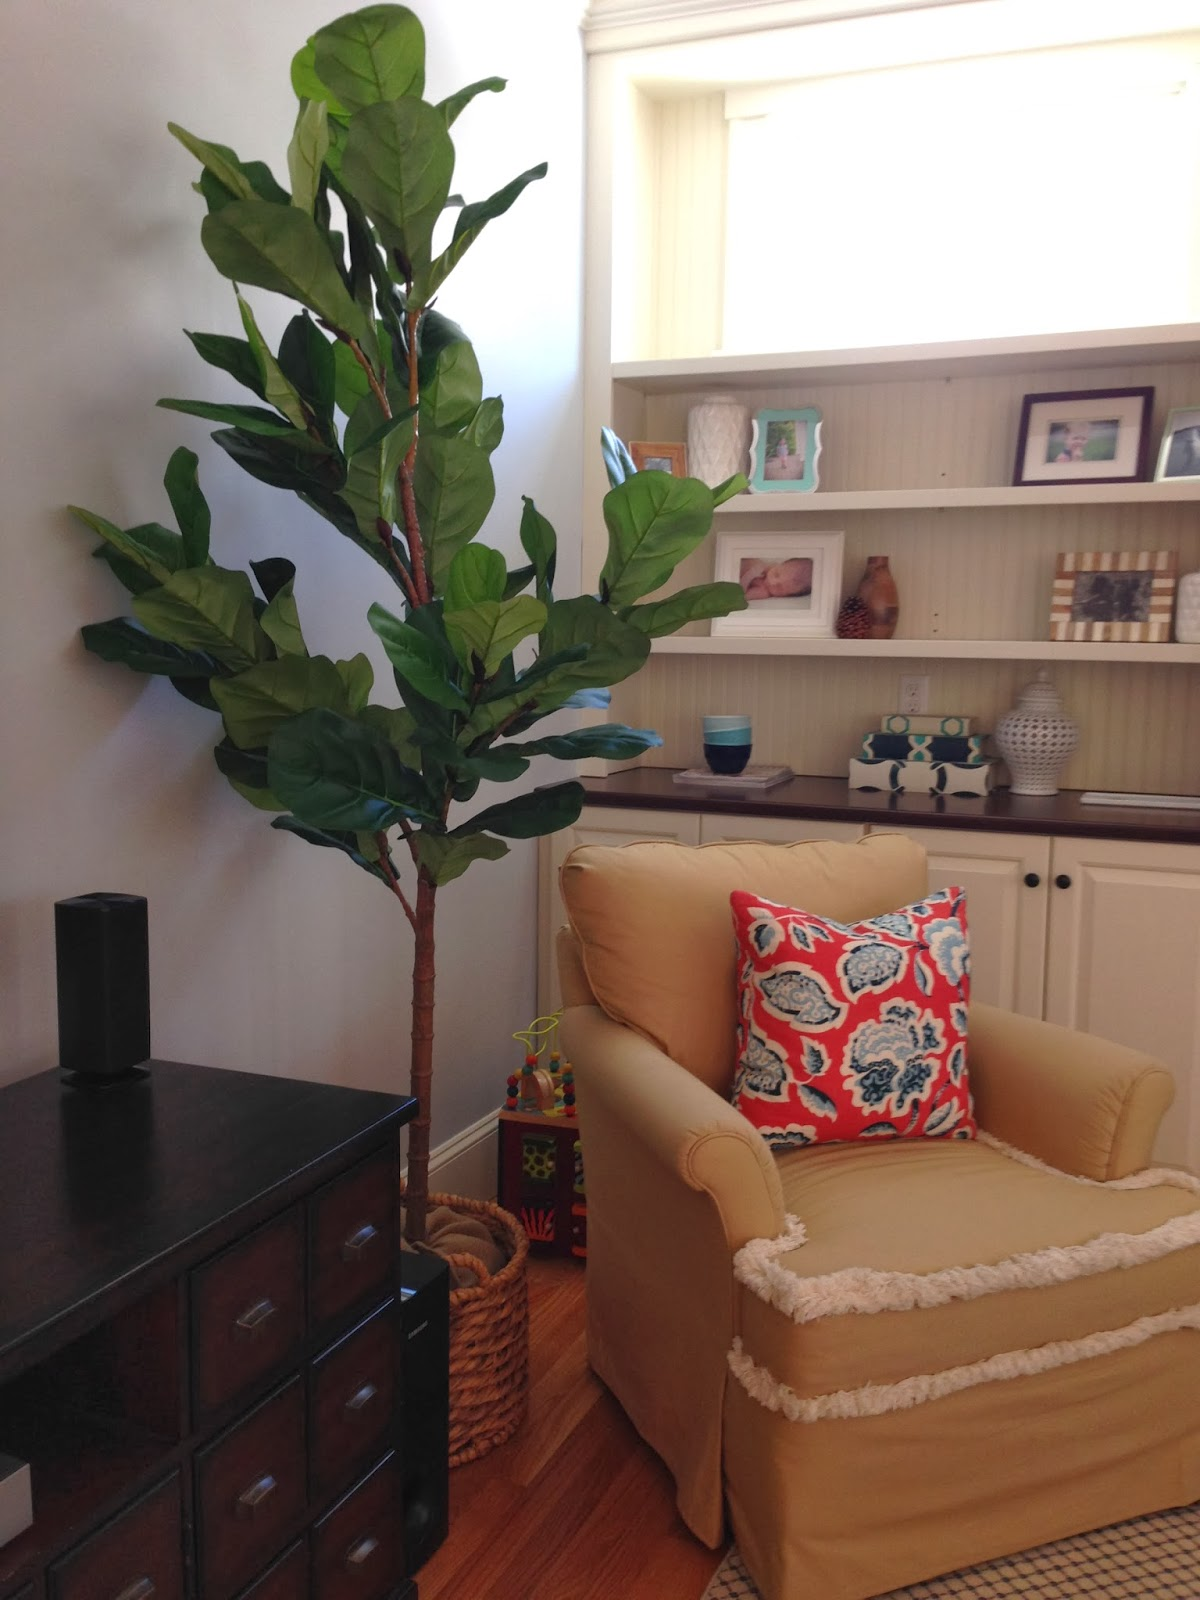 dried out plants but then i walked into pottery barn last weekend to return a lampshade and came face to face with a 6u0027 tall faux fiddle leaf fig